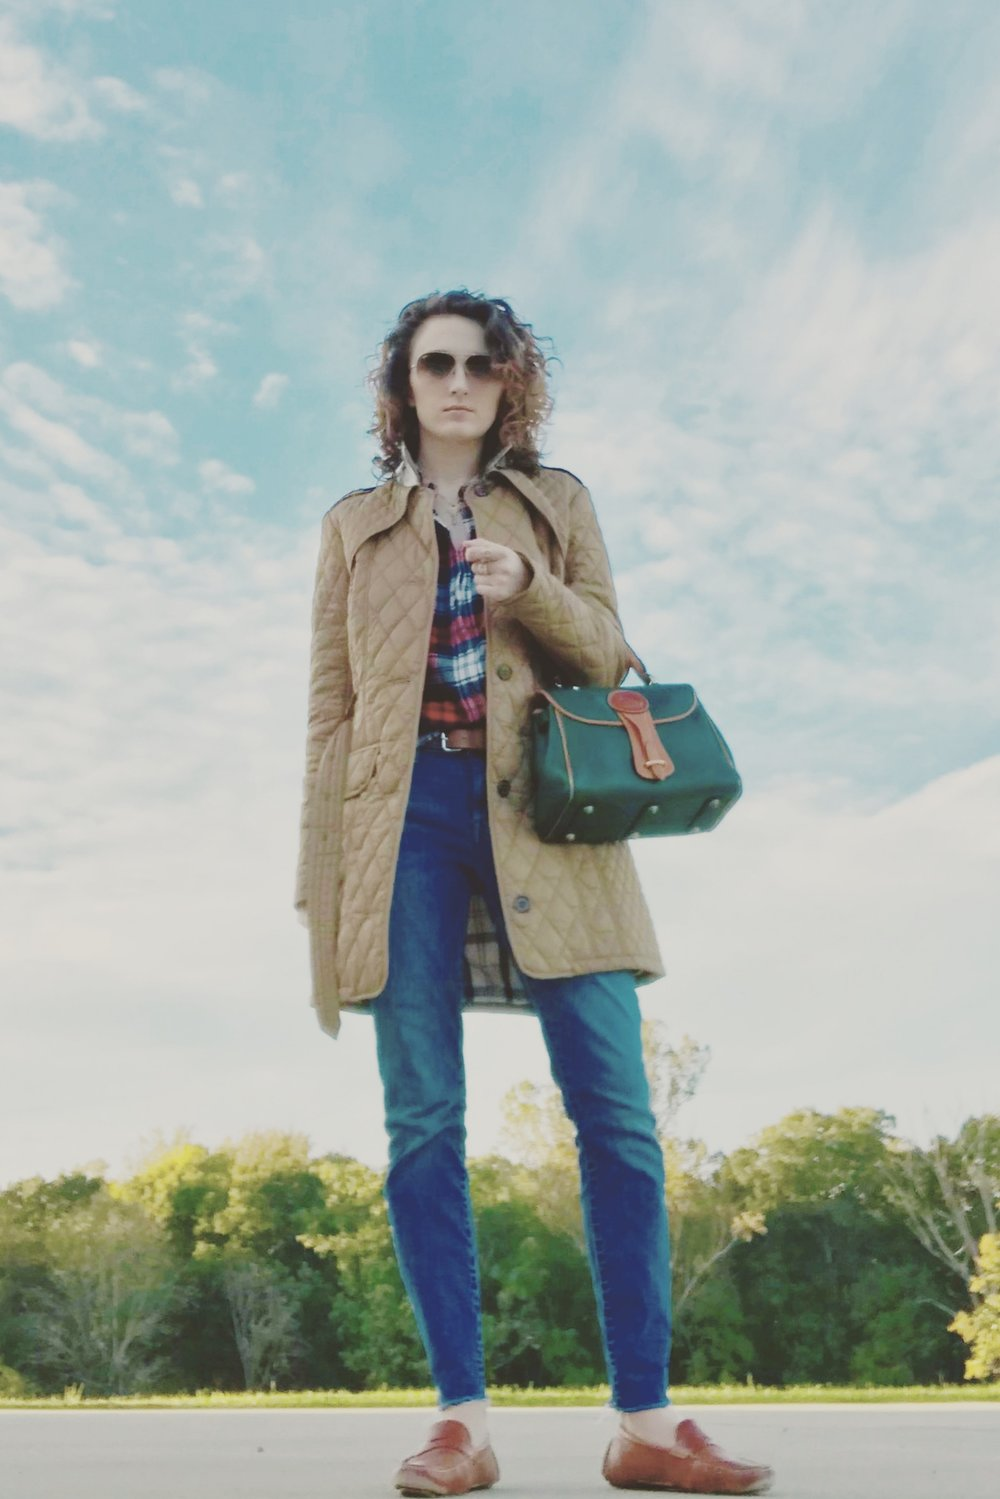 Sunglasses: Ray-Ban; Flannel shirt and coat: Barbour; Purse: Dooney & Bourke All Weather Leather (Vintage); Belt: H&M; Jeans: Lucky Brand; Shoes: Cole Haan.